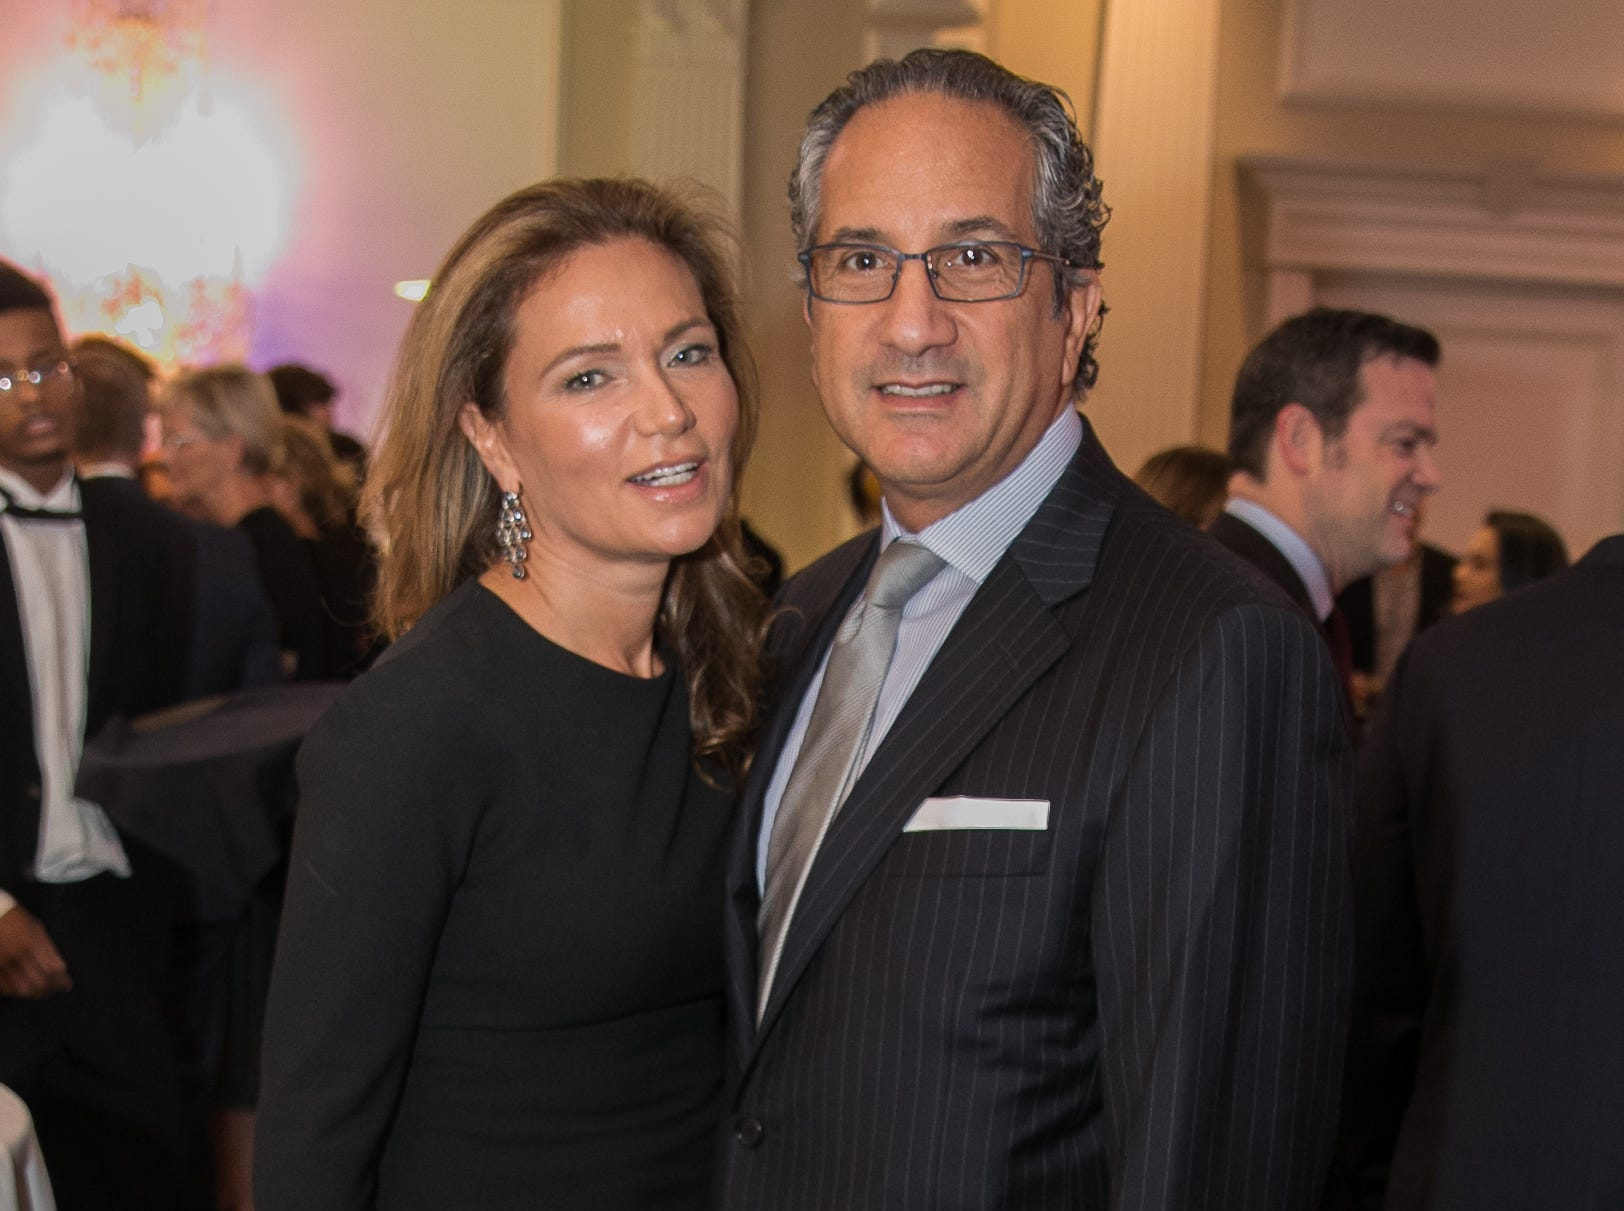 Terri and Fadi Chartouni. Bergen Family Center celebrated 120 years of service with dinner and a silent auction at Th e Rockleigh Country Club.11/1/2018